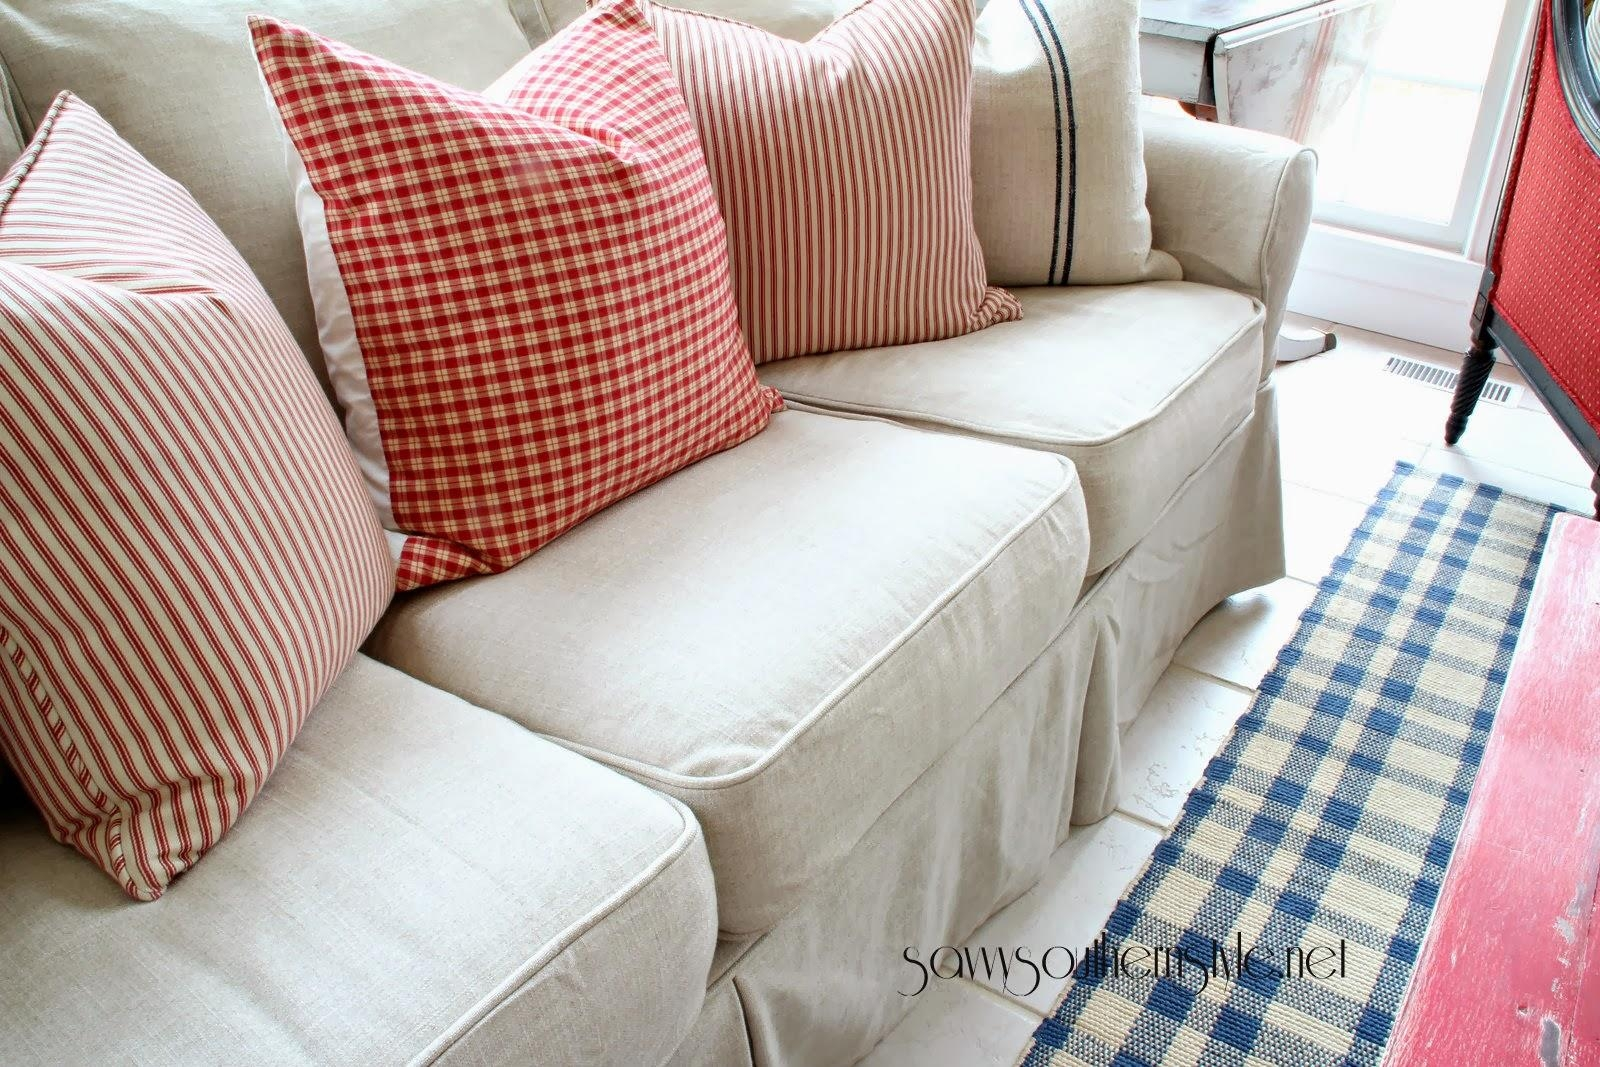 Custom Slipcovers And Couch Cover For Any Sofa Online With Individual Couch Seat Cushion Covers (Image 4 of 20)